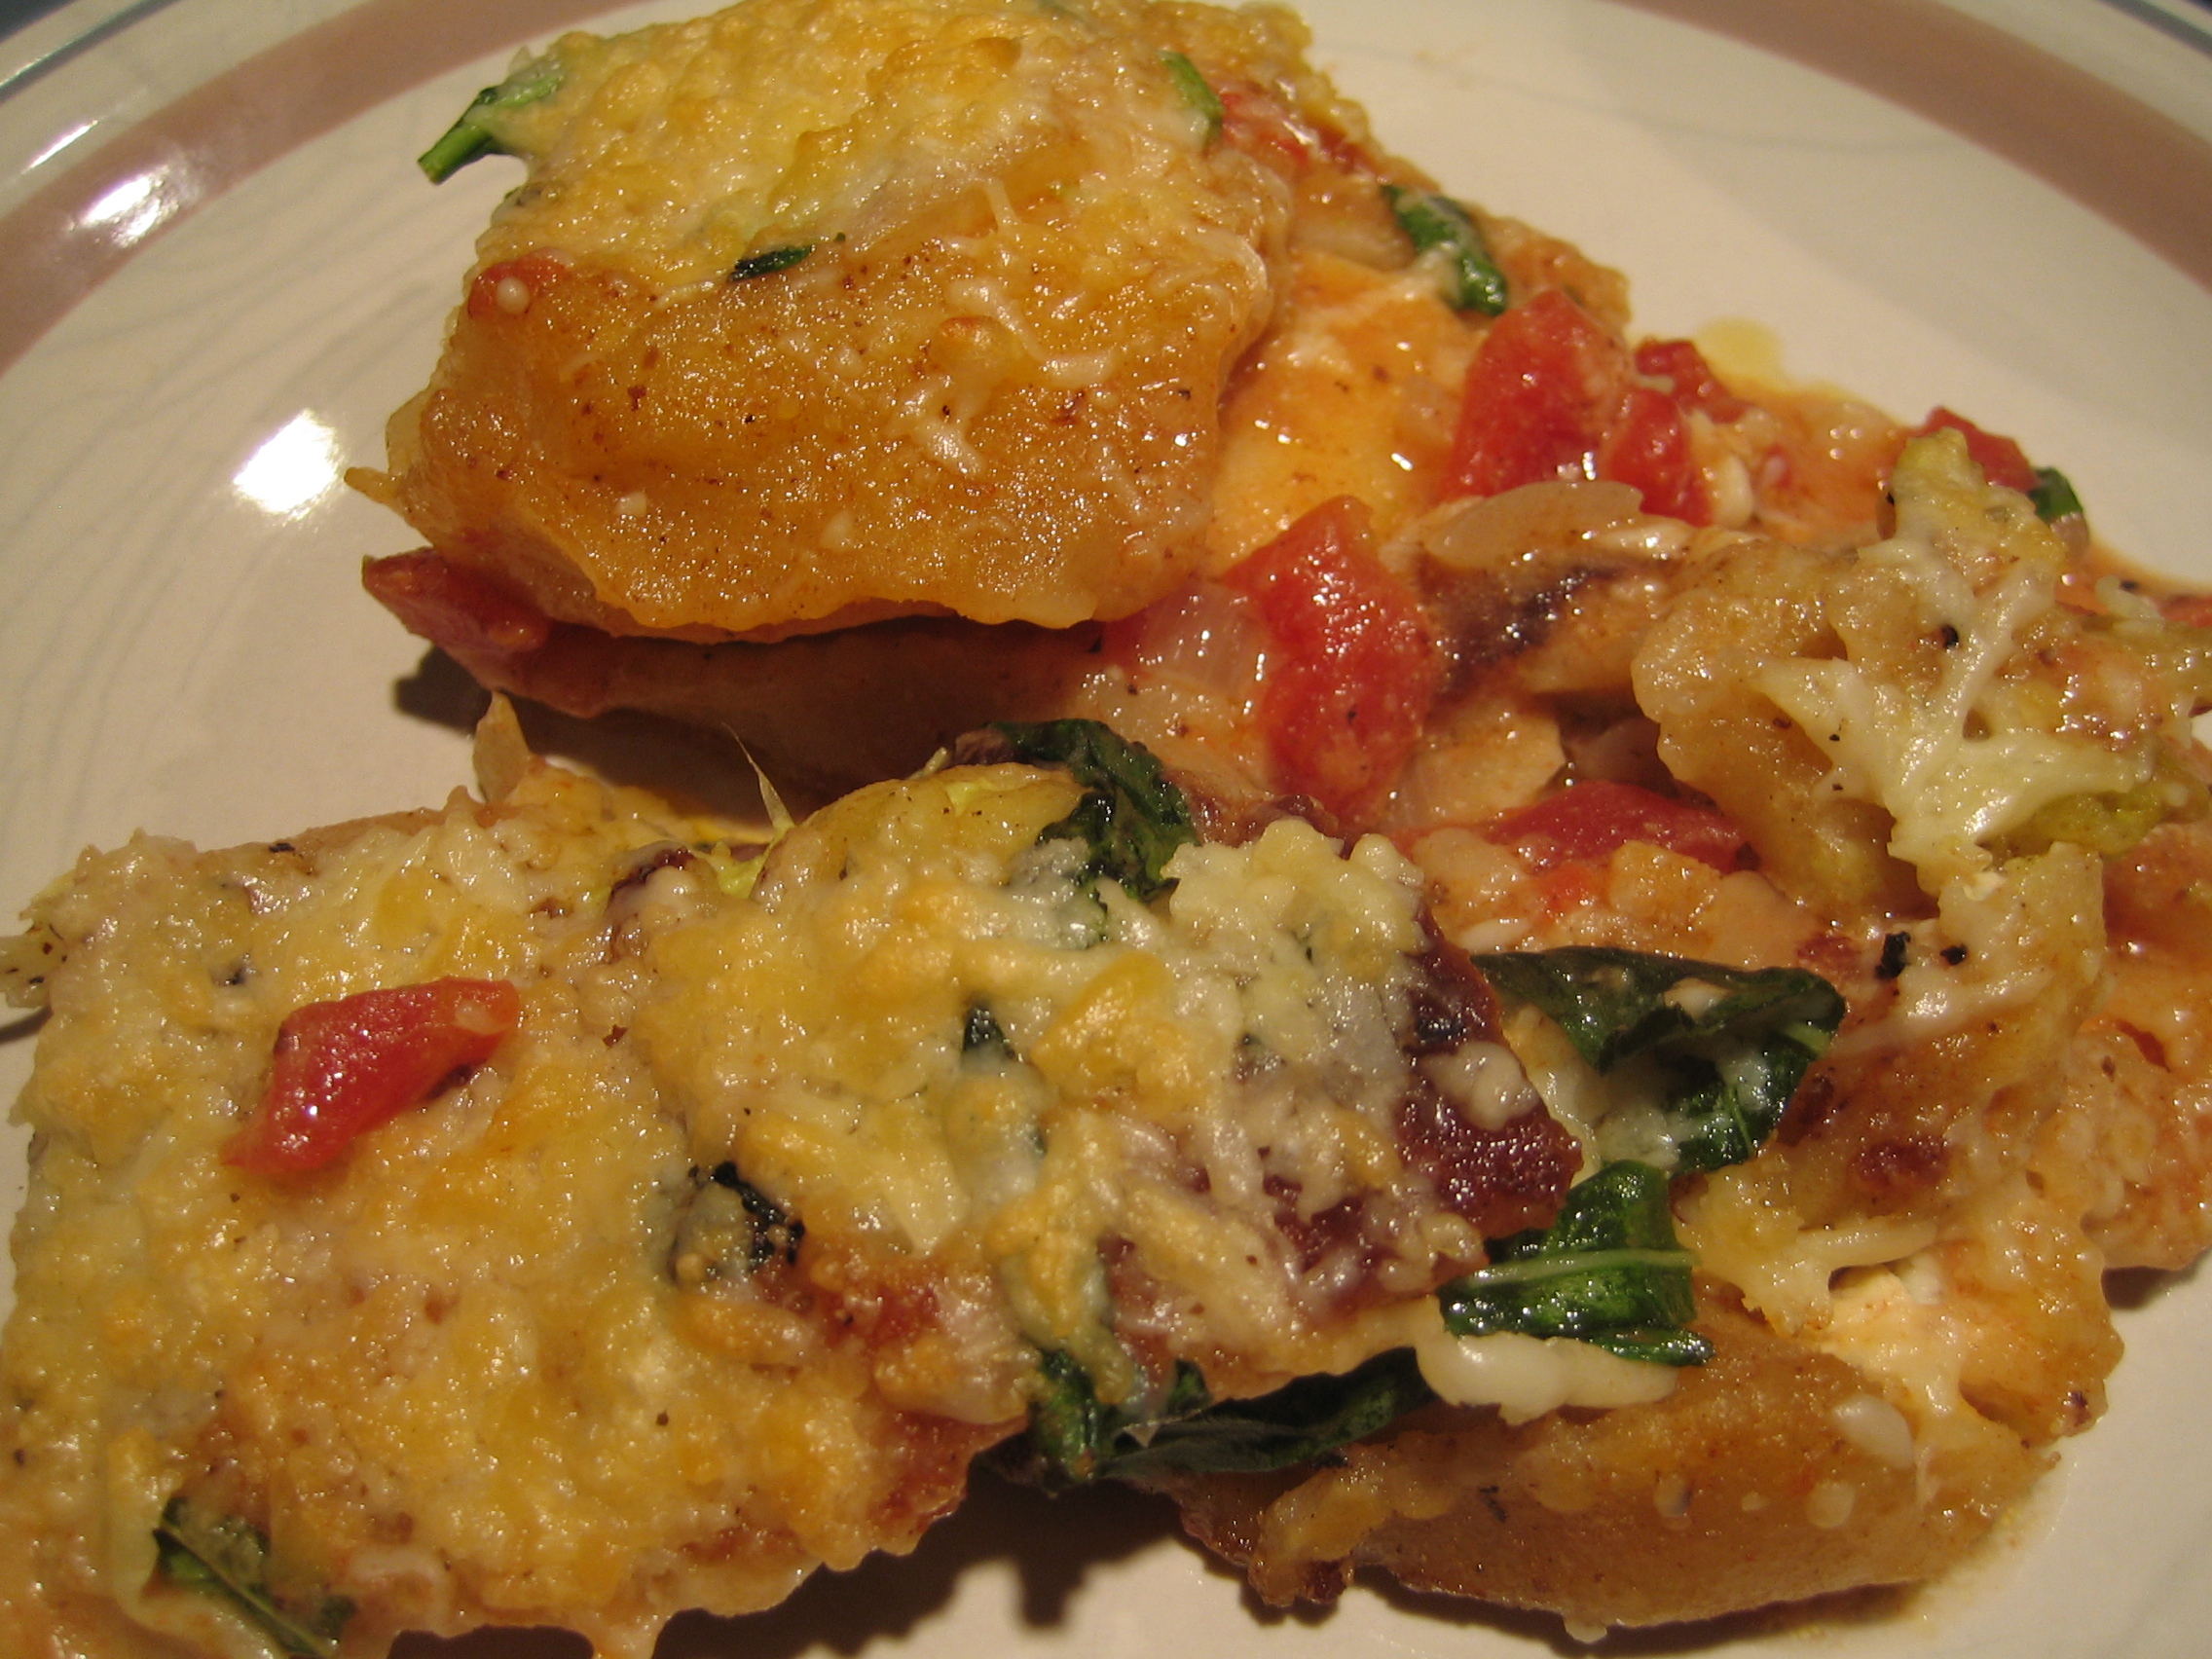 Toasted Ravioli In Tomato Cream Sauce I Sing In The Kitchen